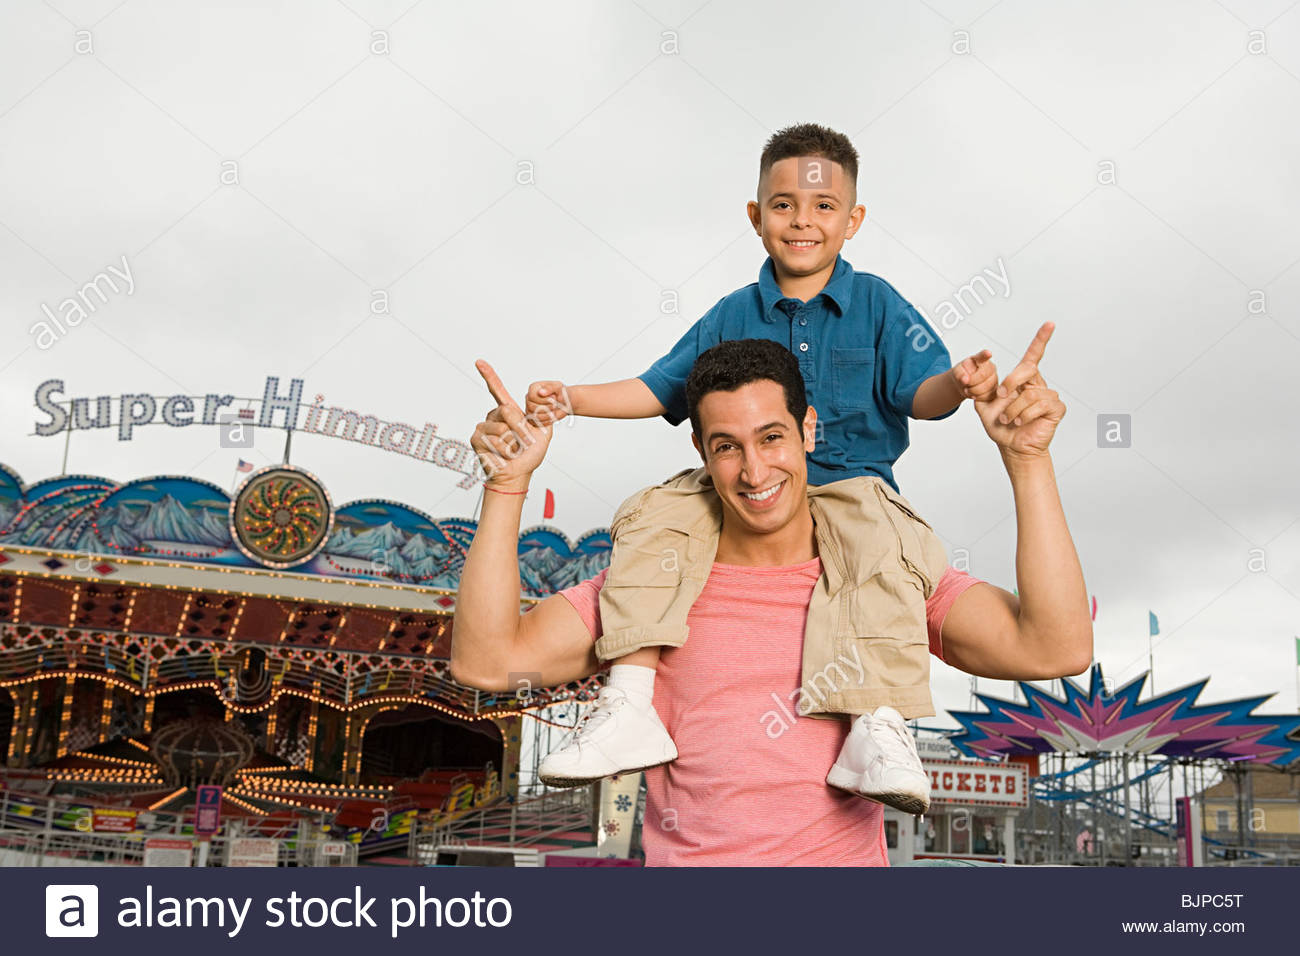 Father and son at amusement park - Stock Image